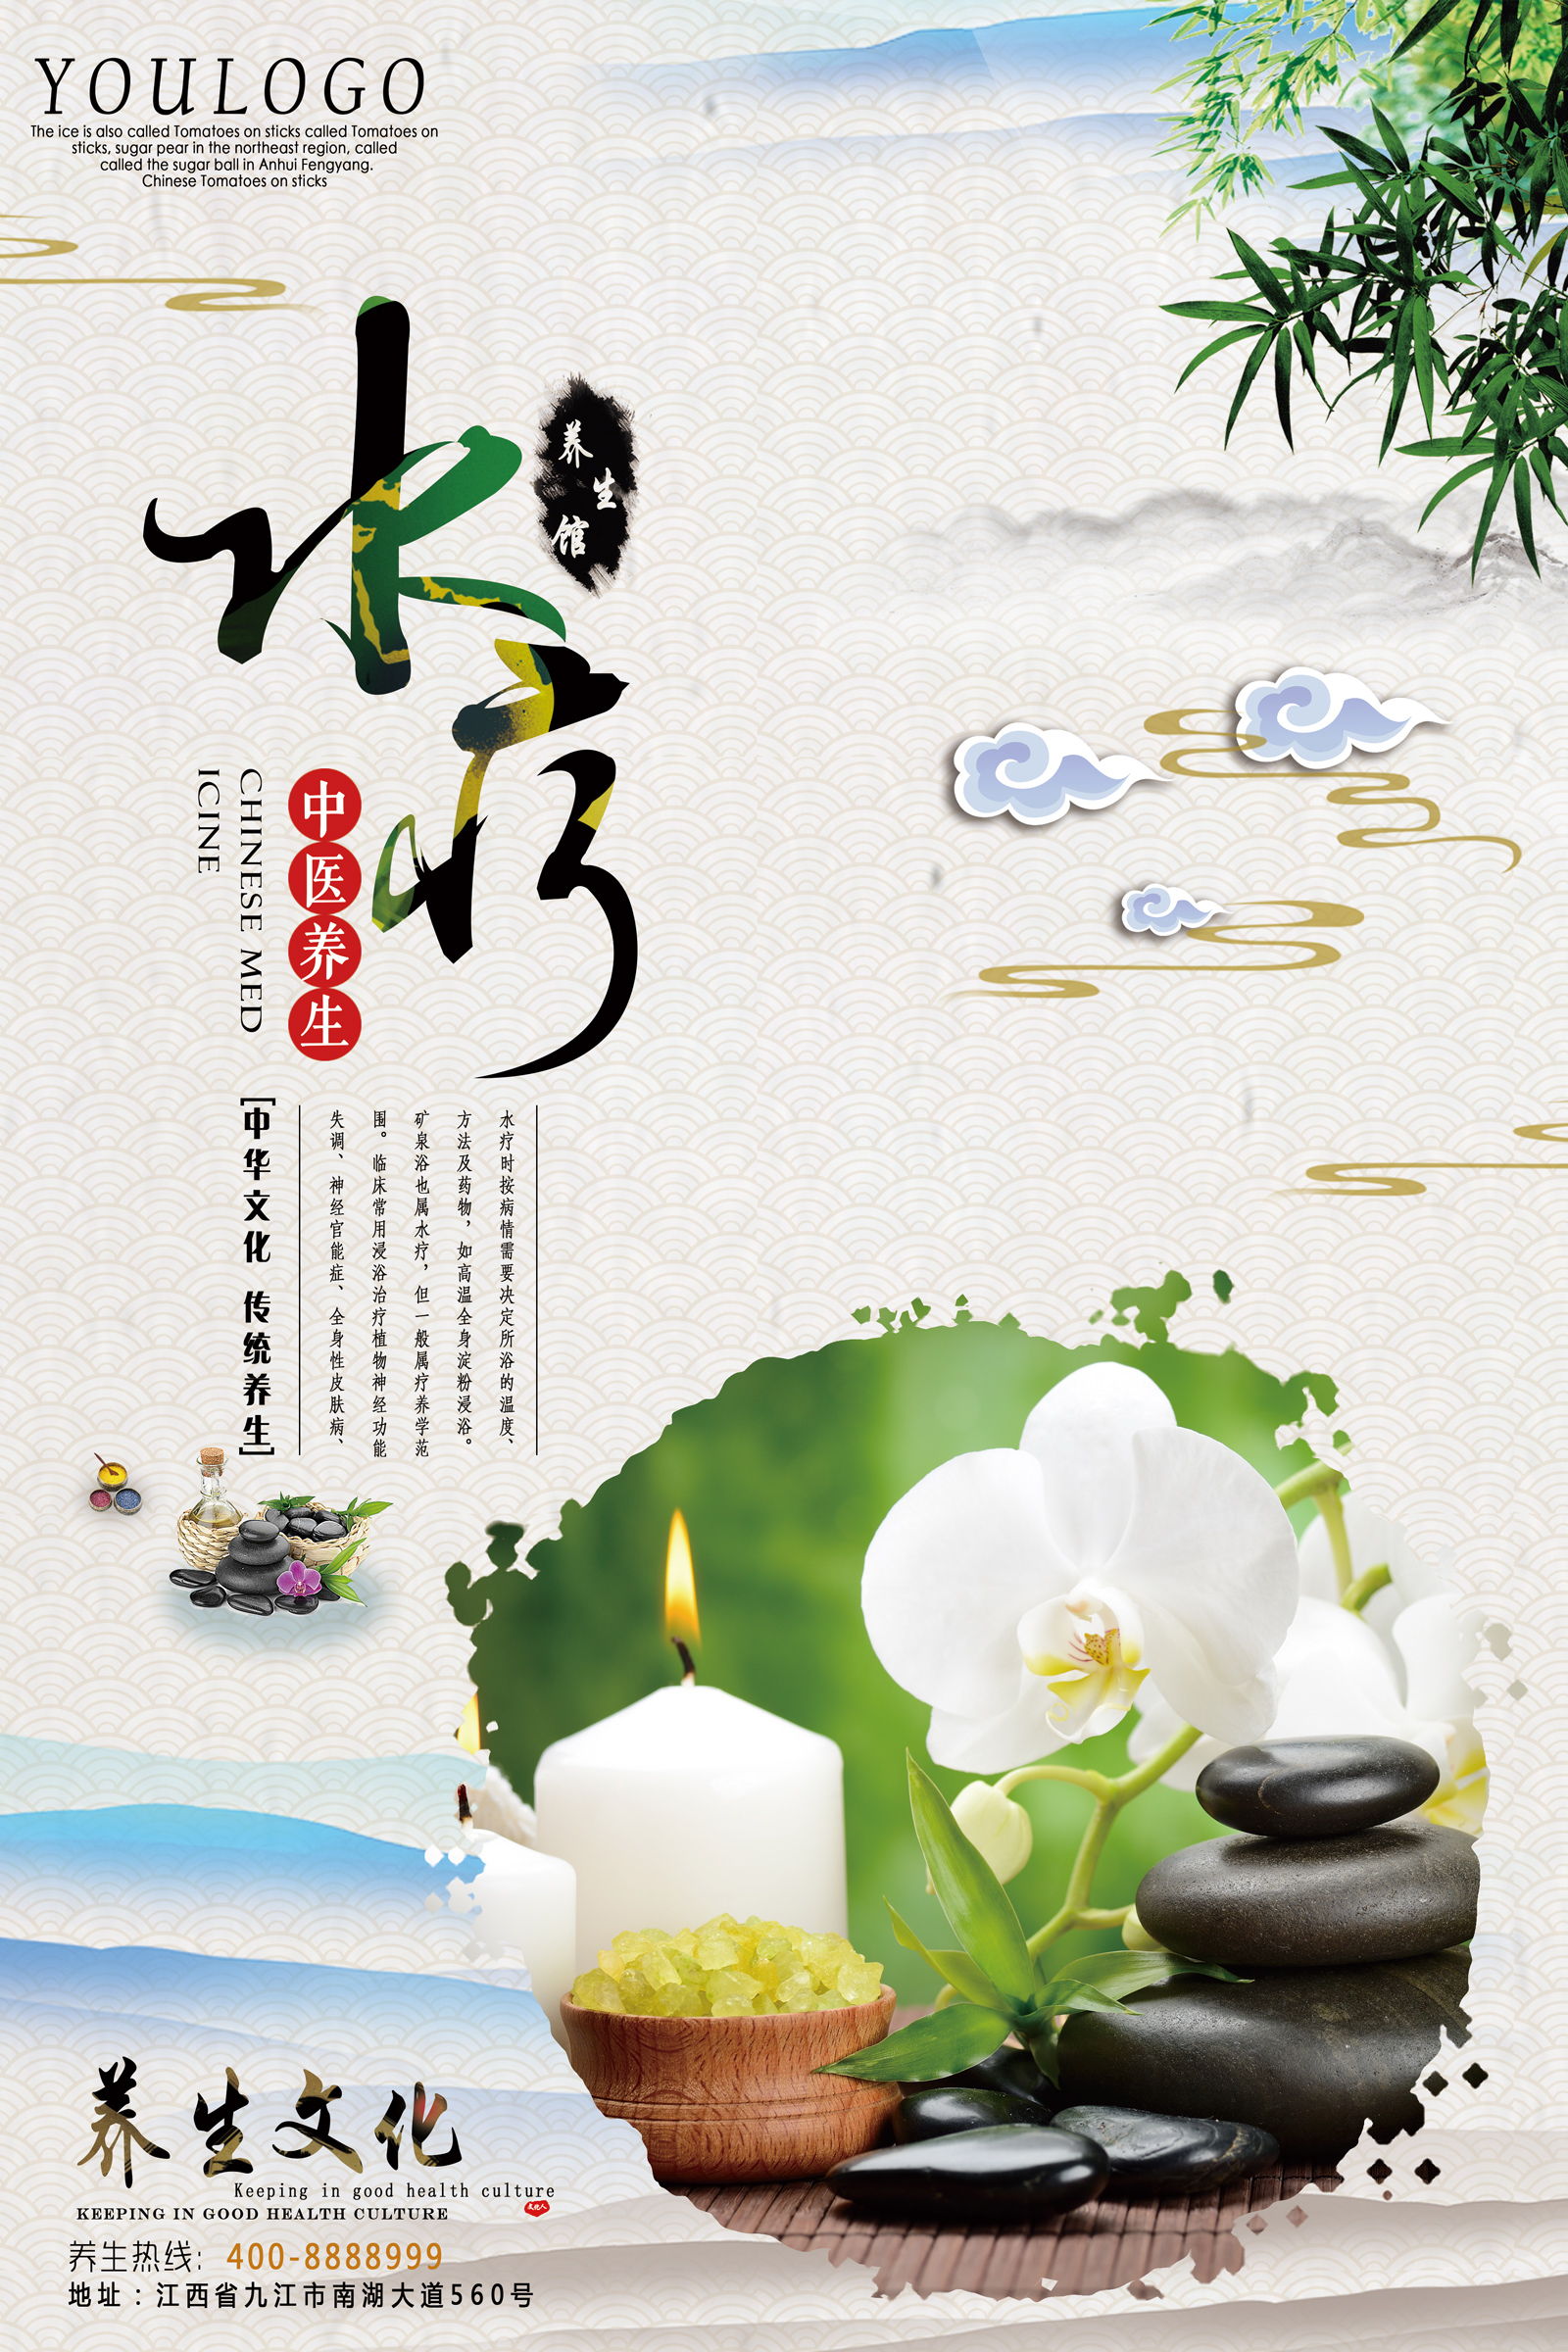 chinesefontdesign.com 2017 04 16 19 51 35 Keeping in good health health spa posters China PSD File Free Download Health care psd Health care advertising